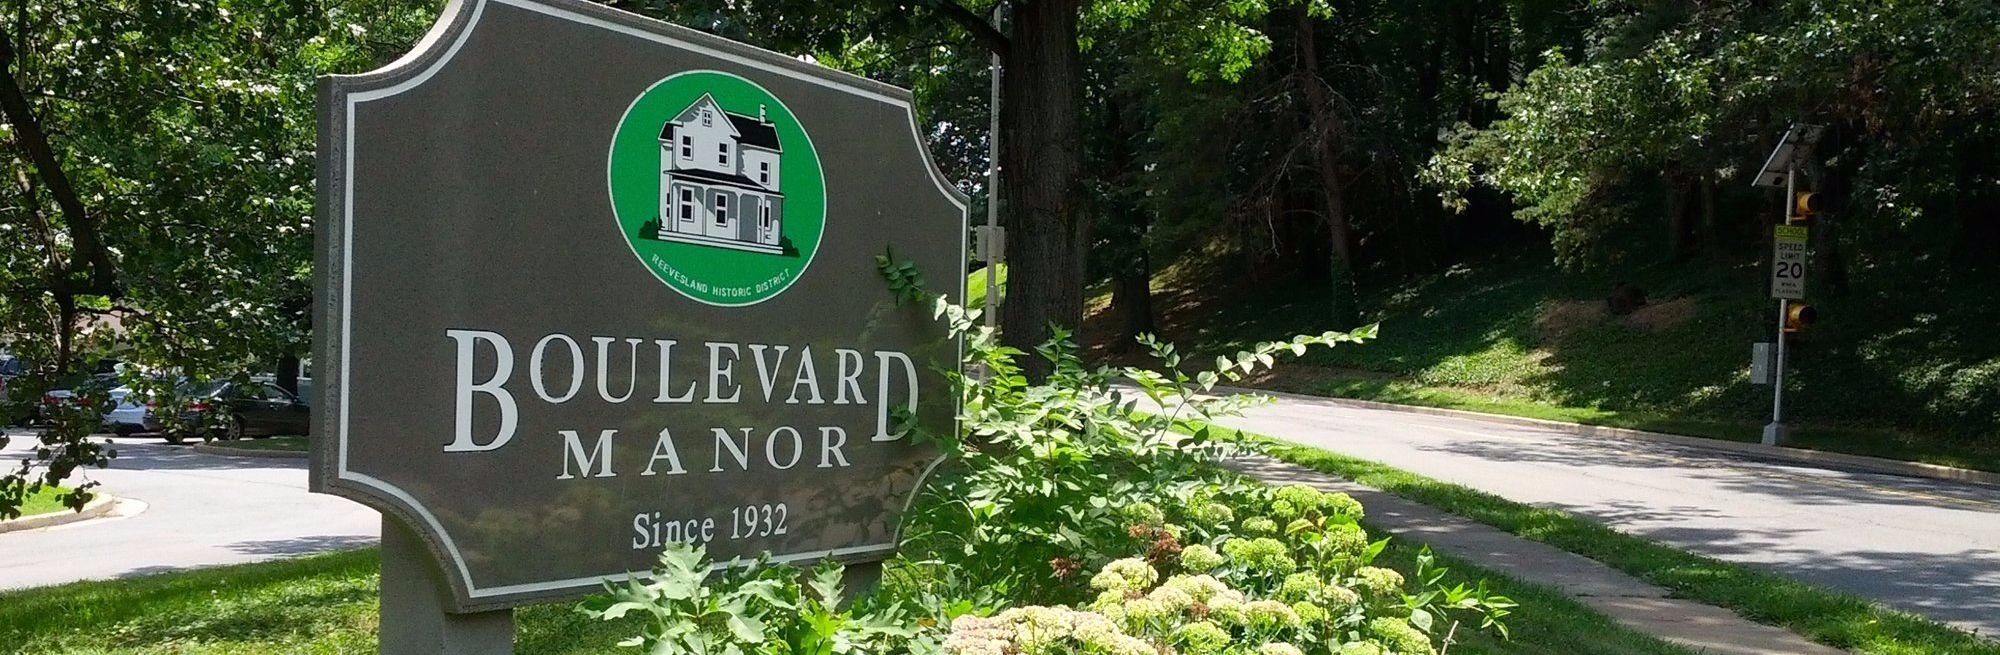 Boulevard Manor condos for sale